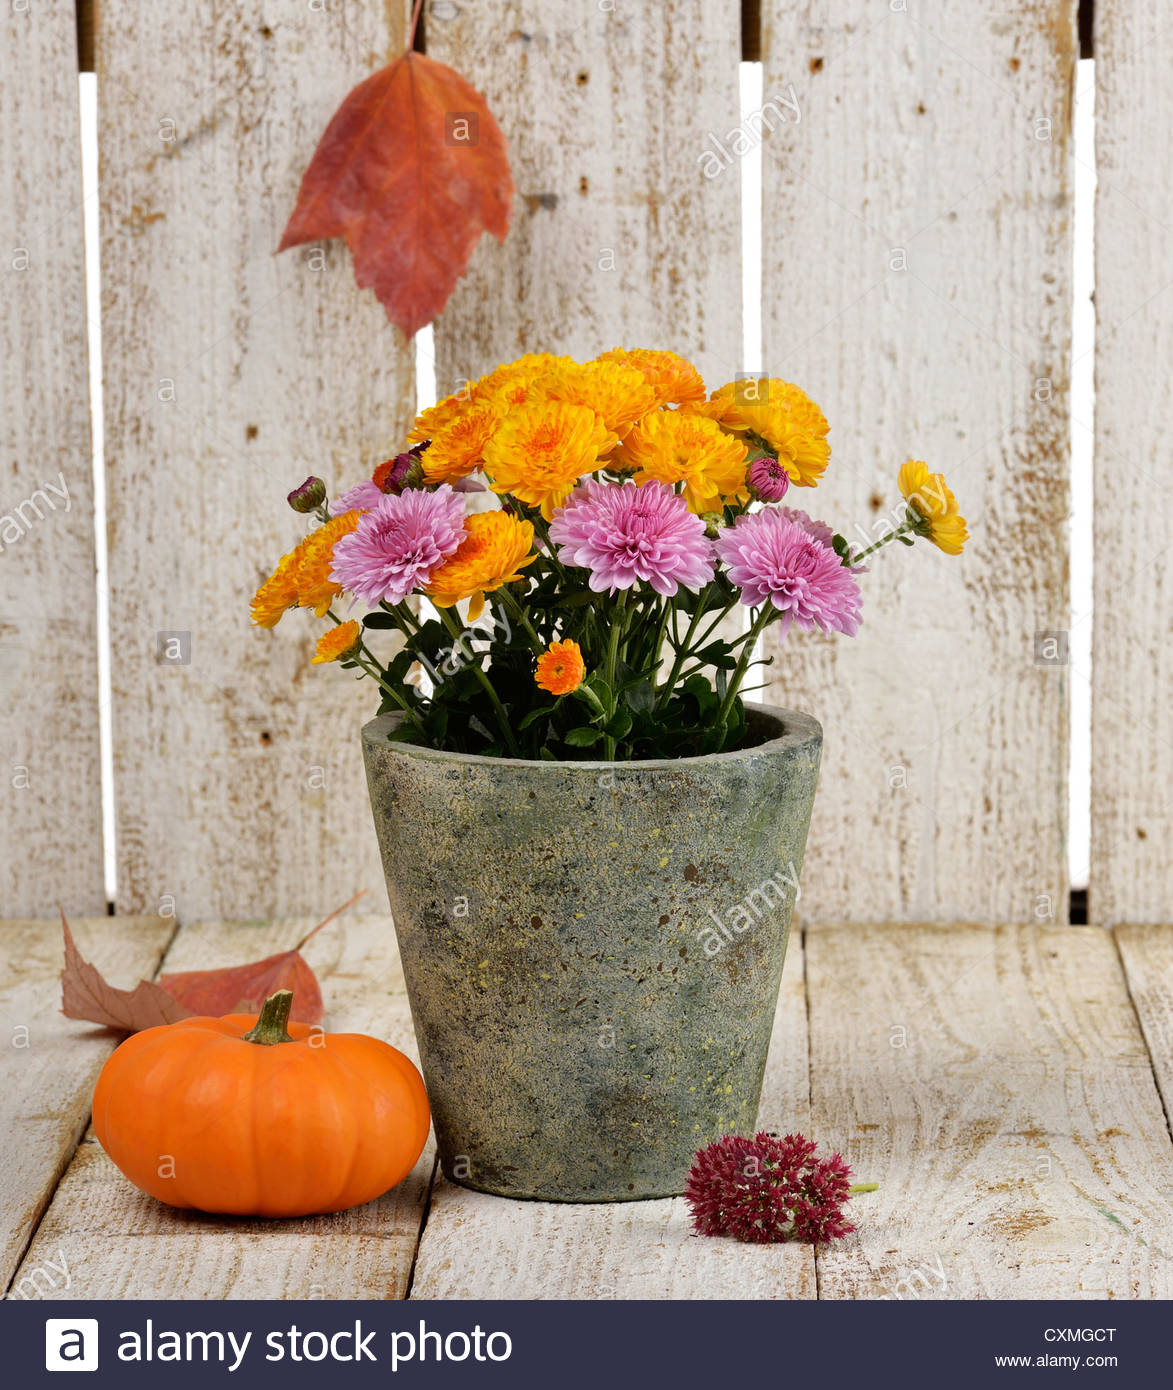 Mums Flowers And A Pumpkin On Wooden Background Stock Photo 1173x1390